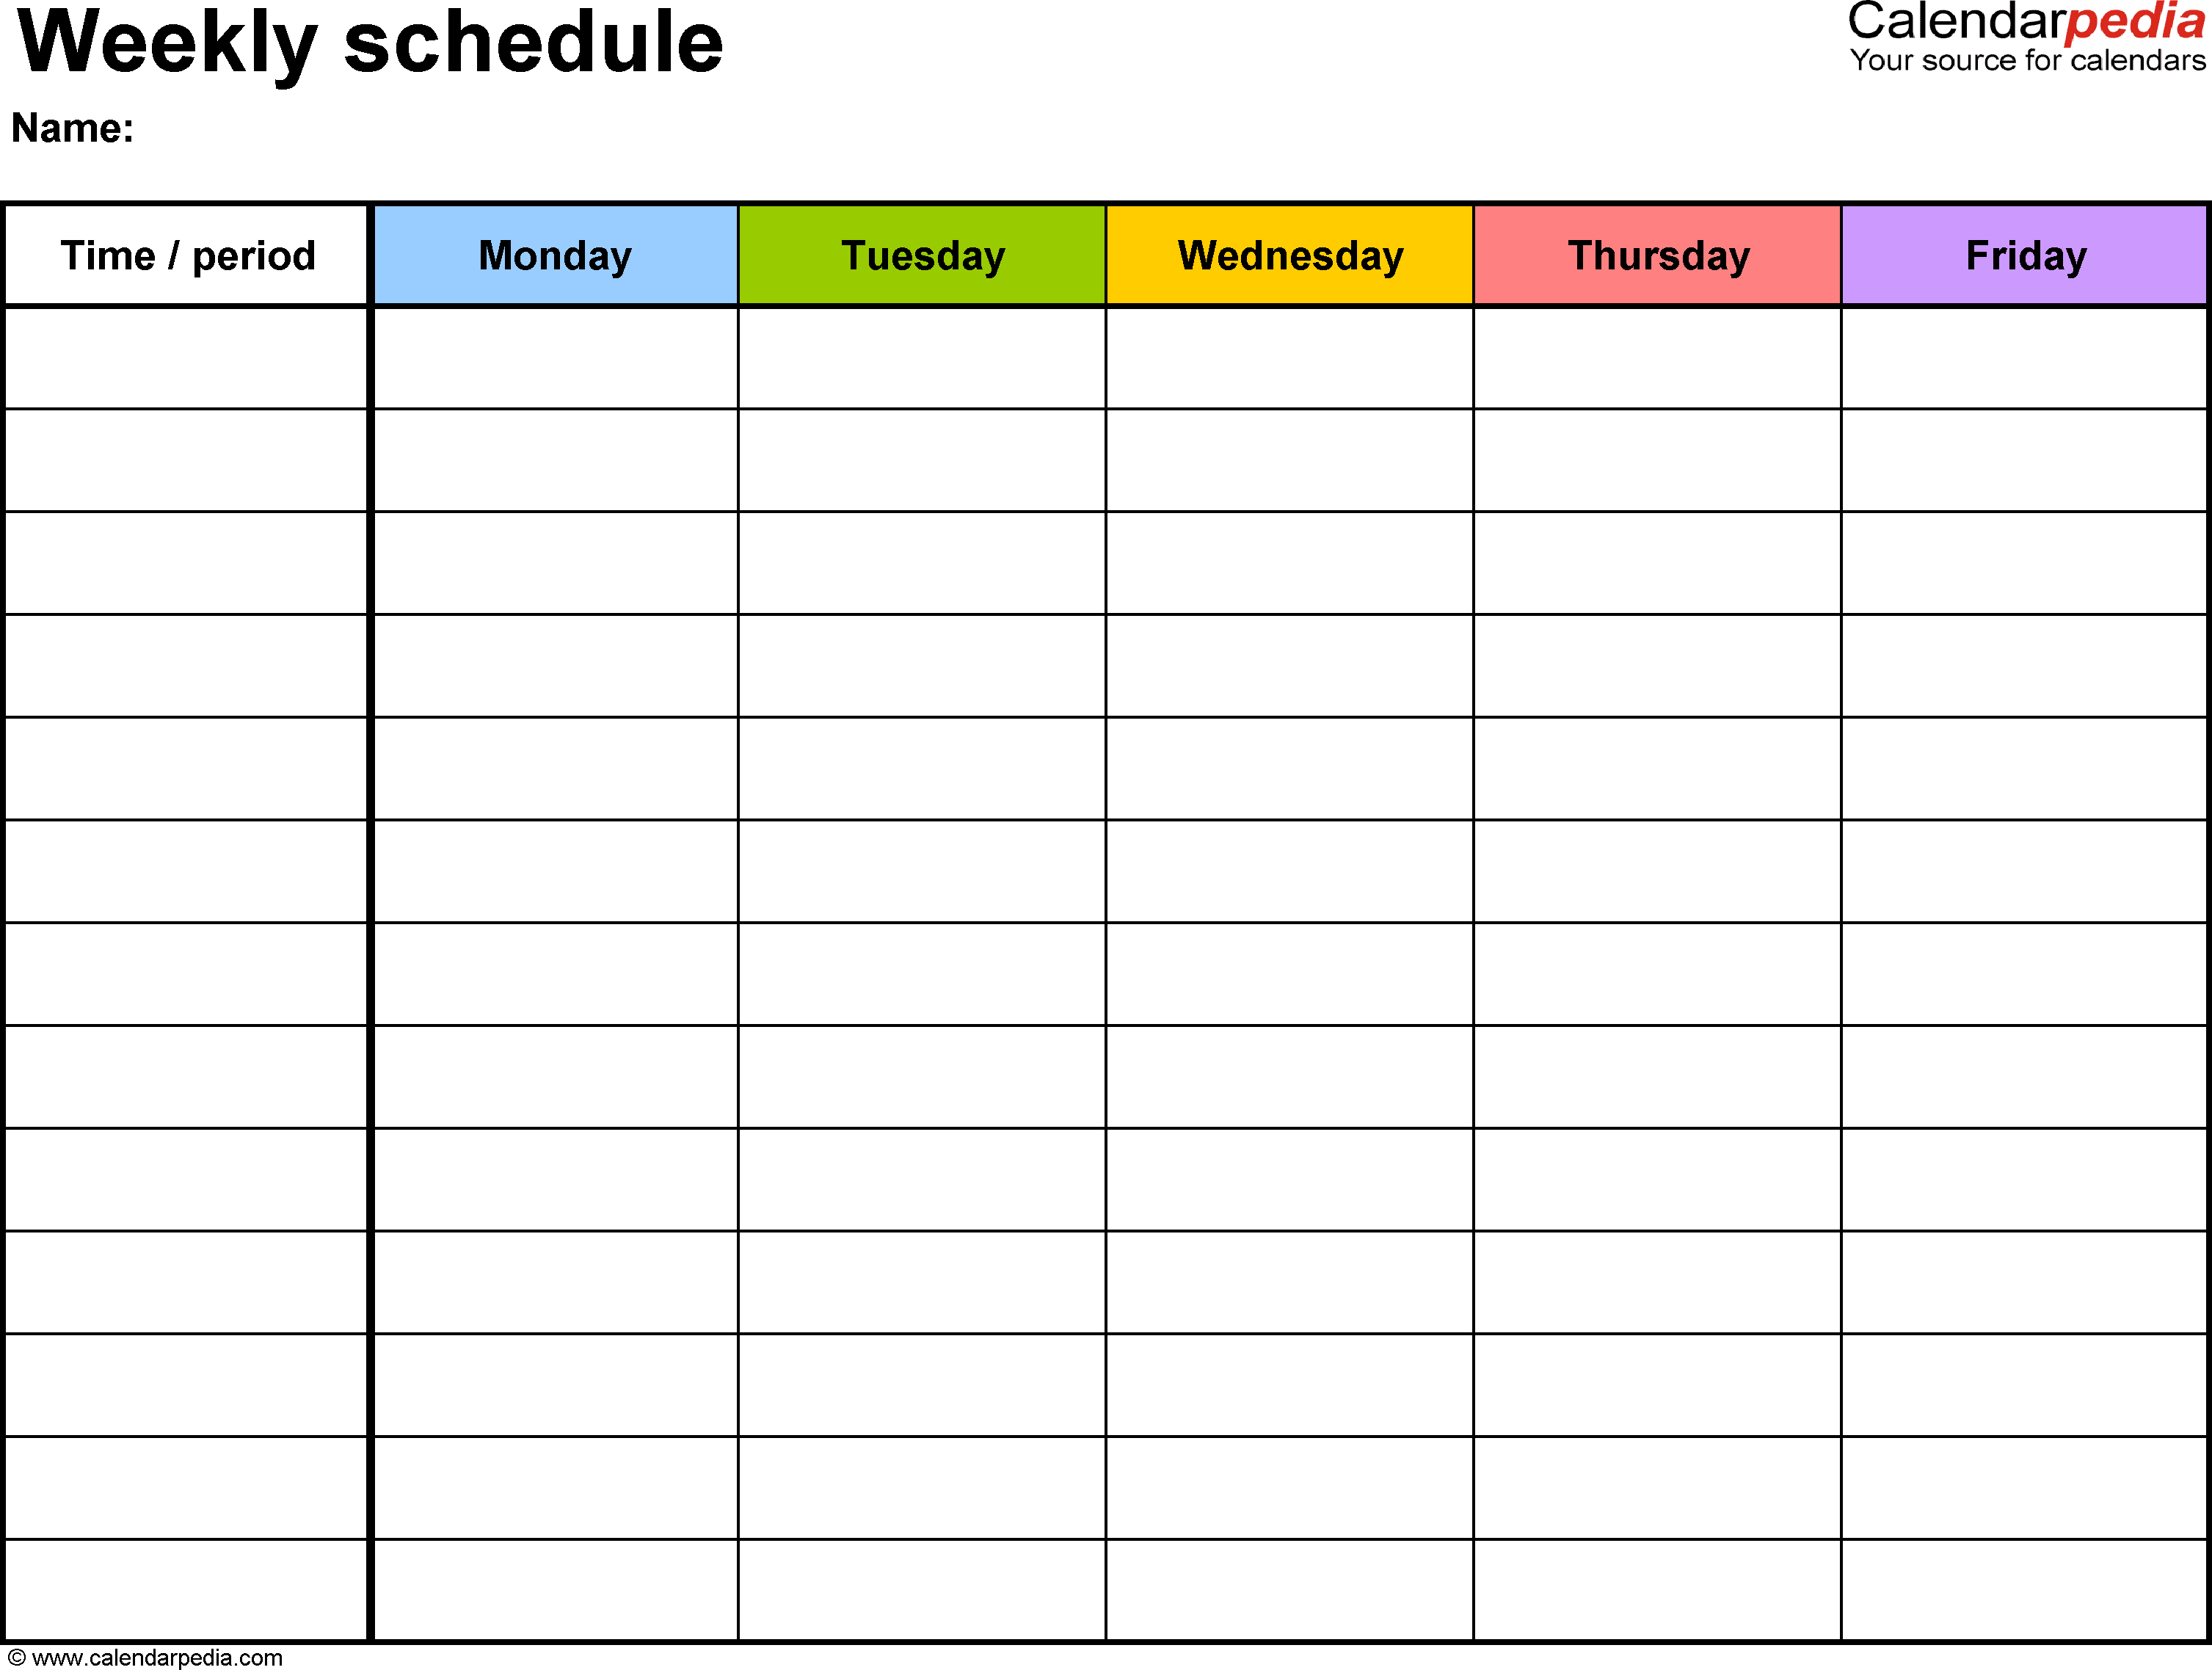 Free Weekly Schedule Templates For Word - 18 Templates regarding Summer Camp Schedule Template Blank